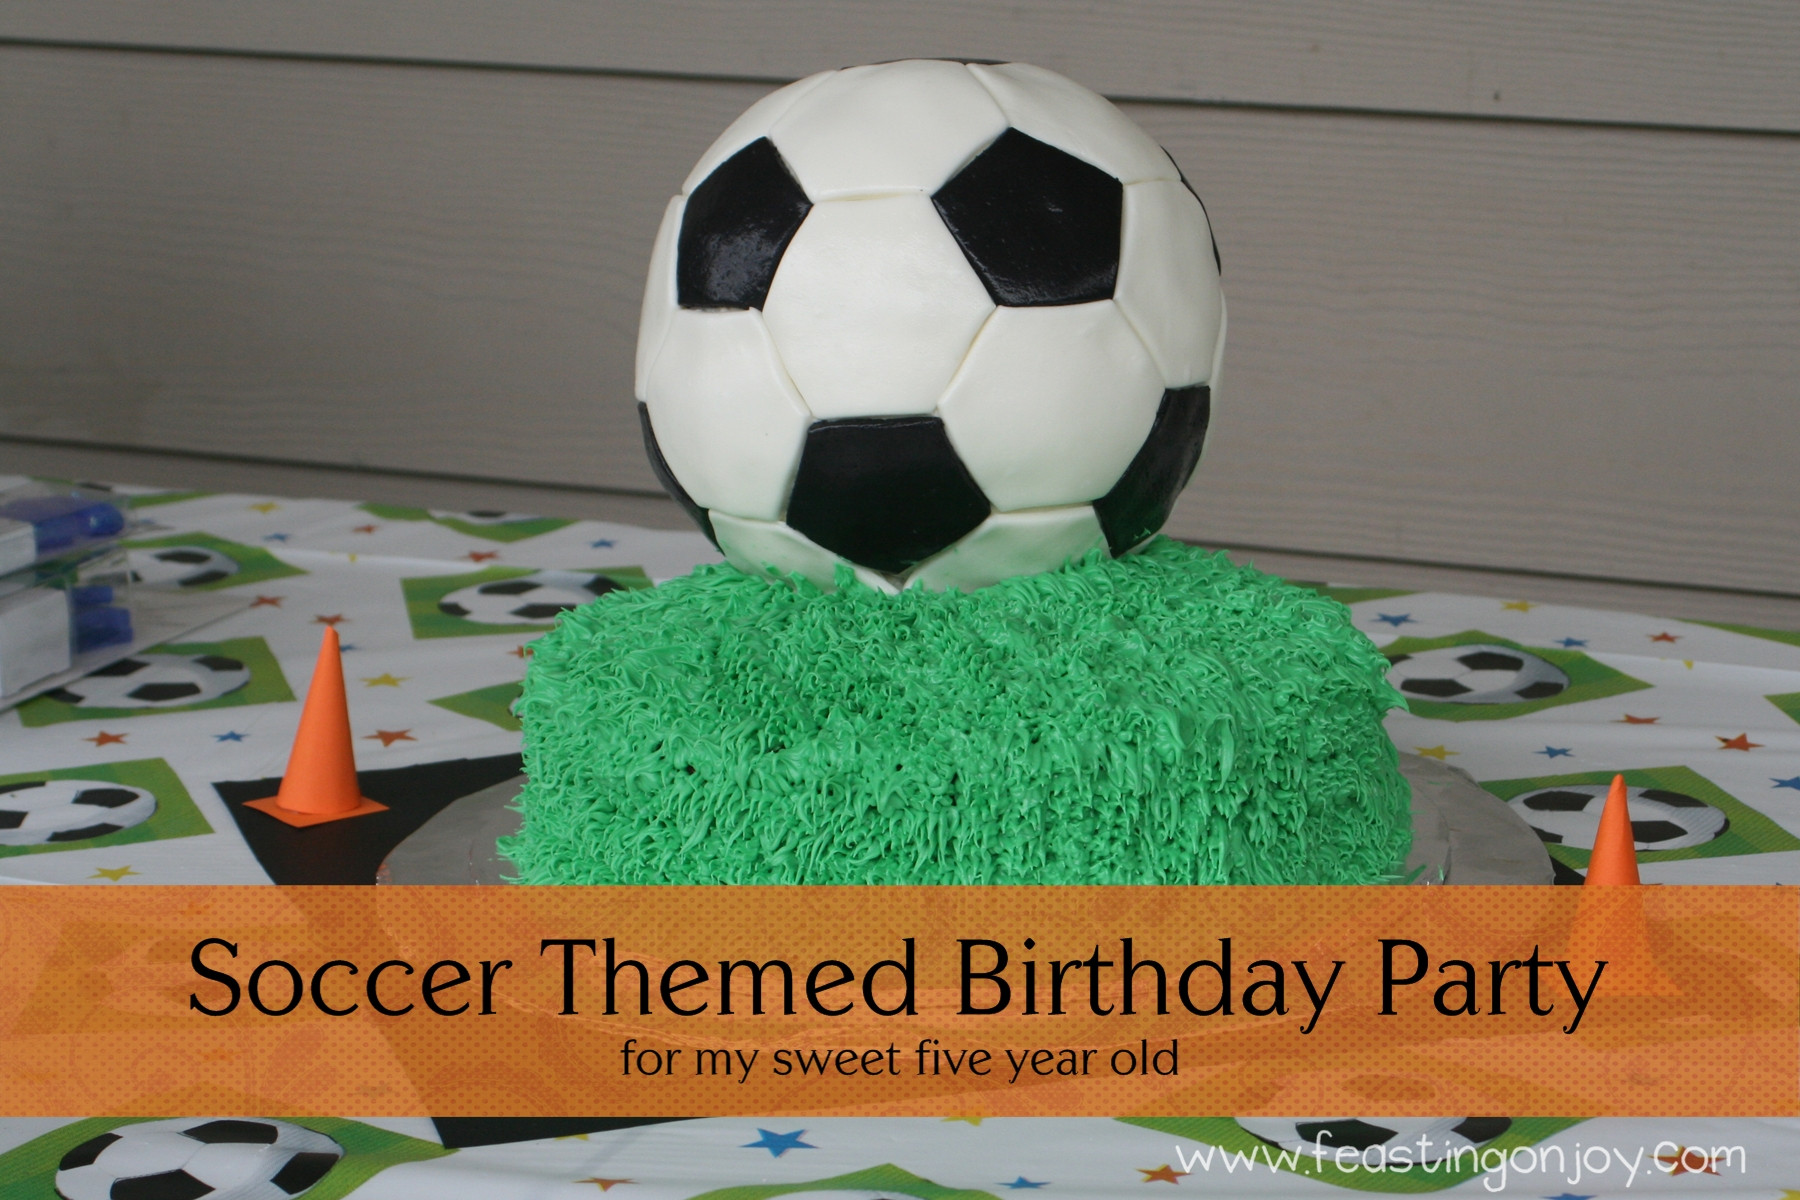 Best ideas about Soccer Theme Birthday Party . Save or Pin Soccer Themed Birthday Party Feasting Joy Now.